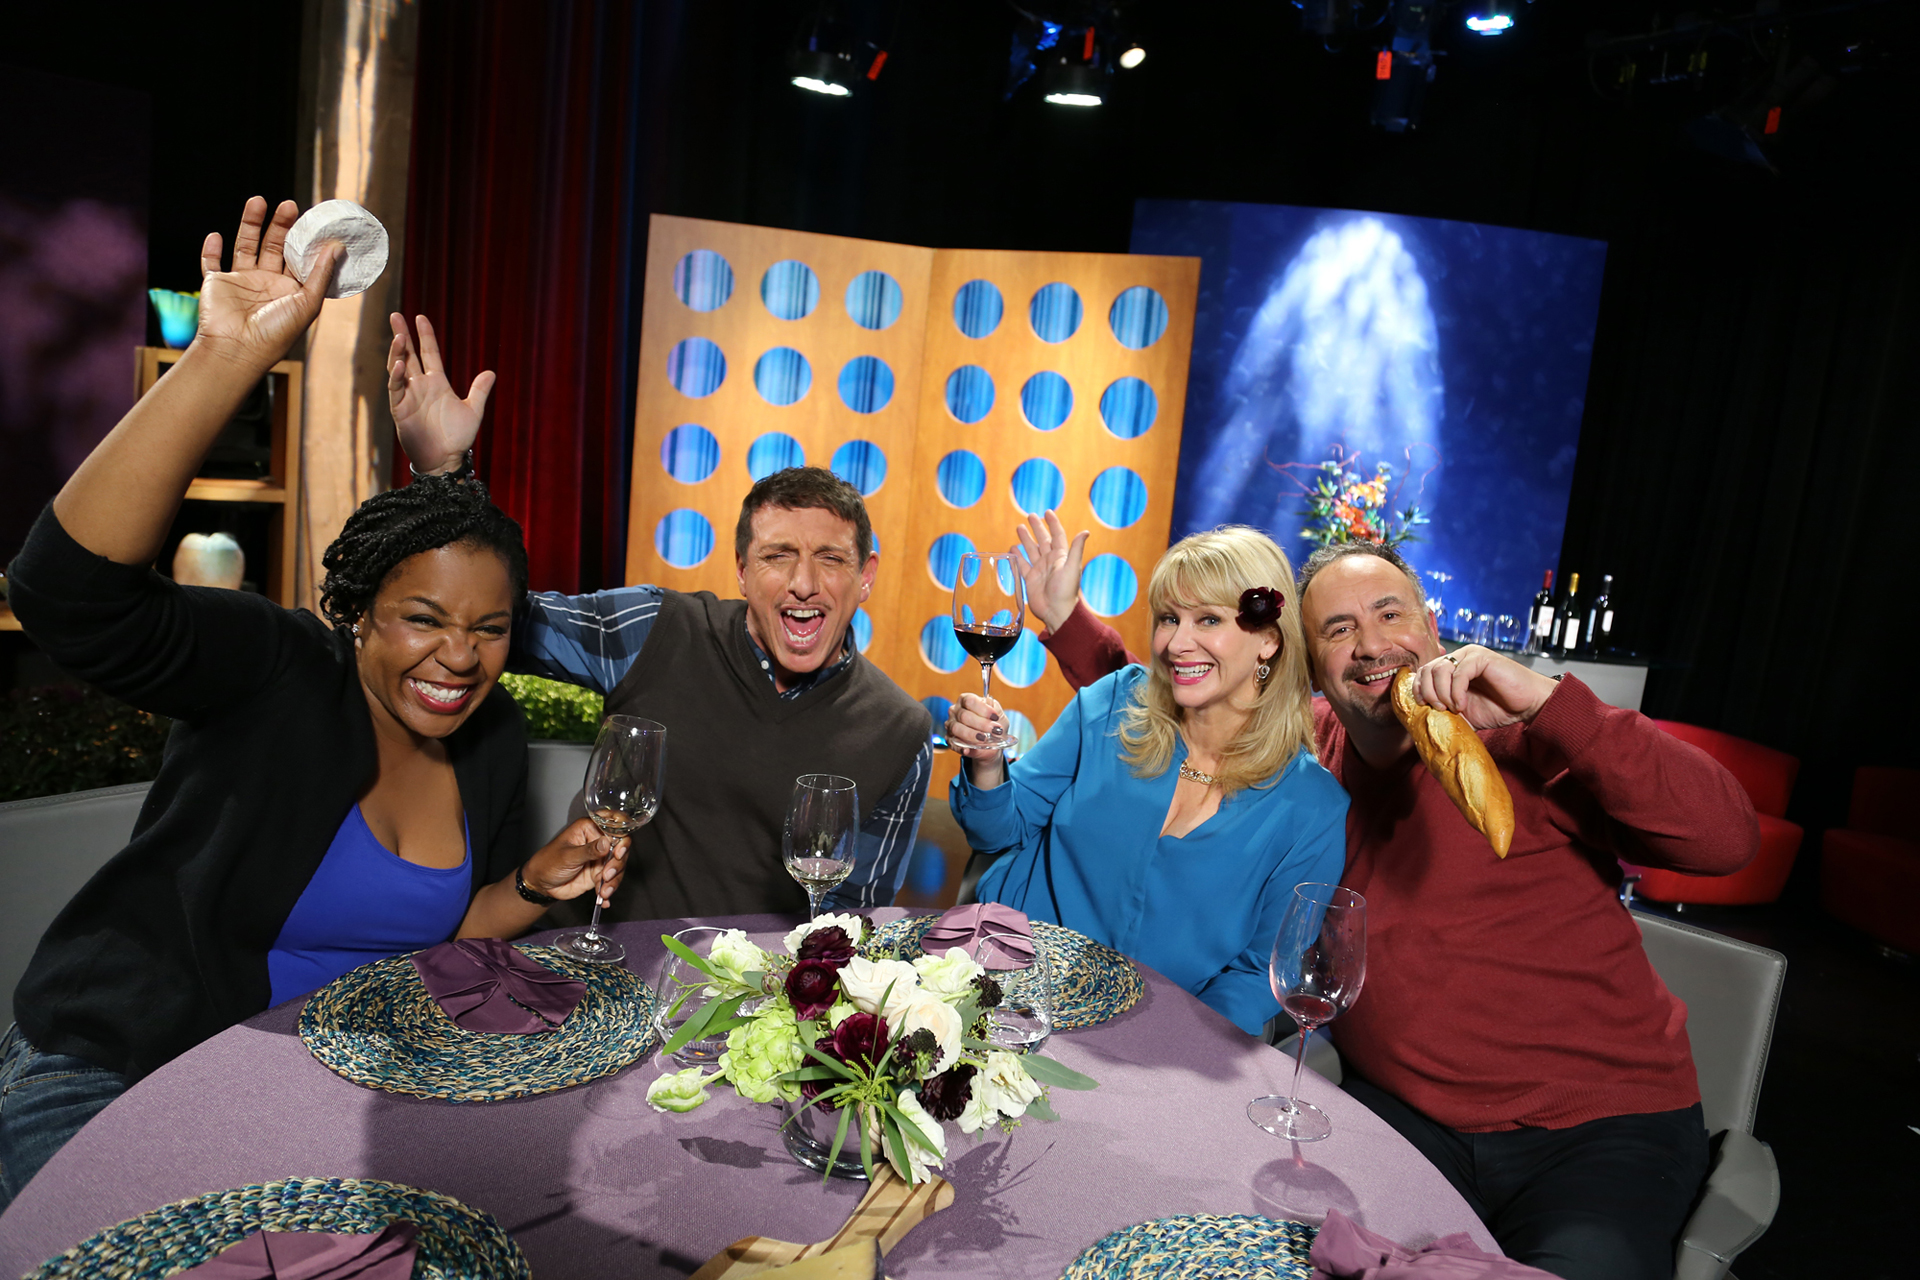 Host Leslie Sbrocco and guests having fun on the set of season 12 episode 2.